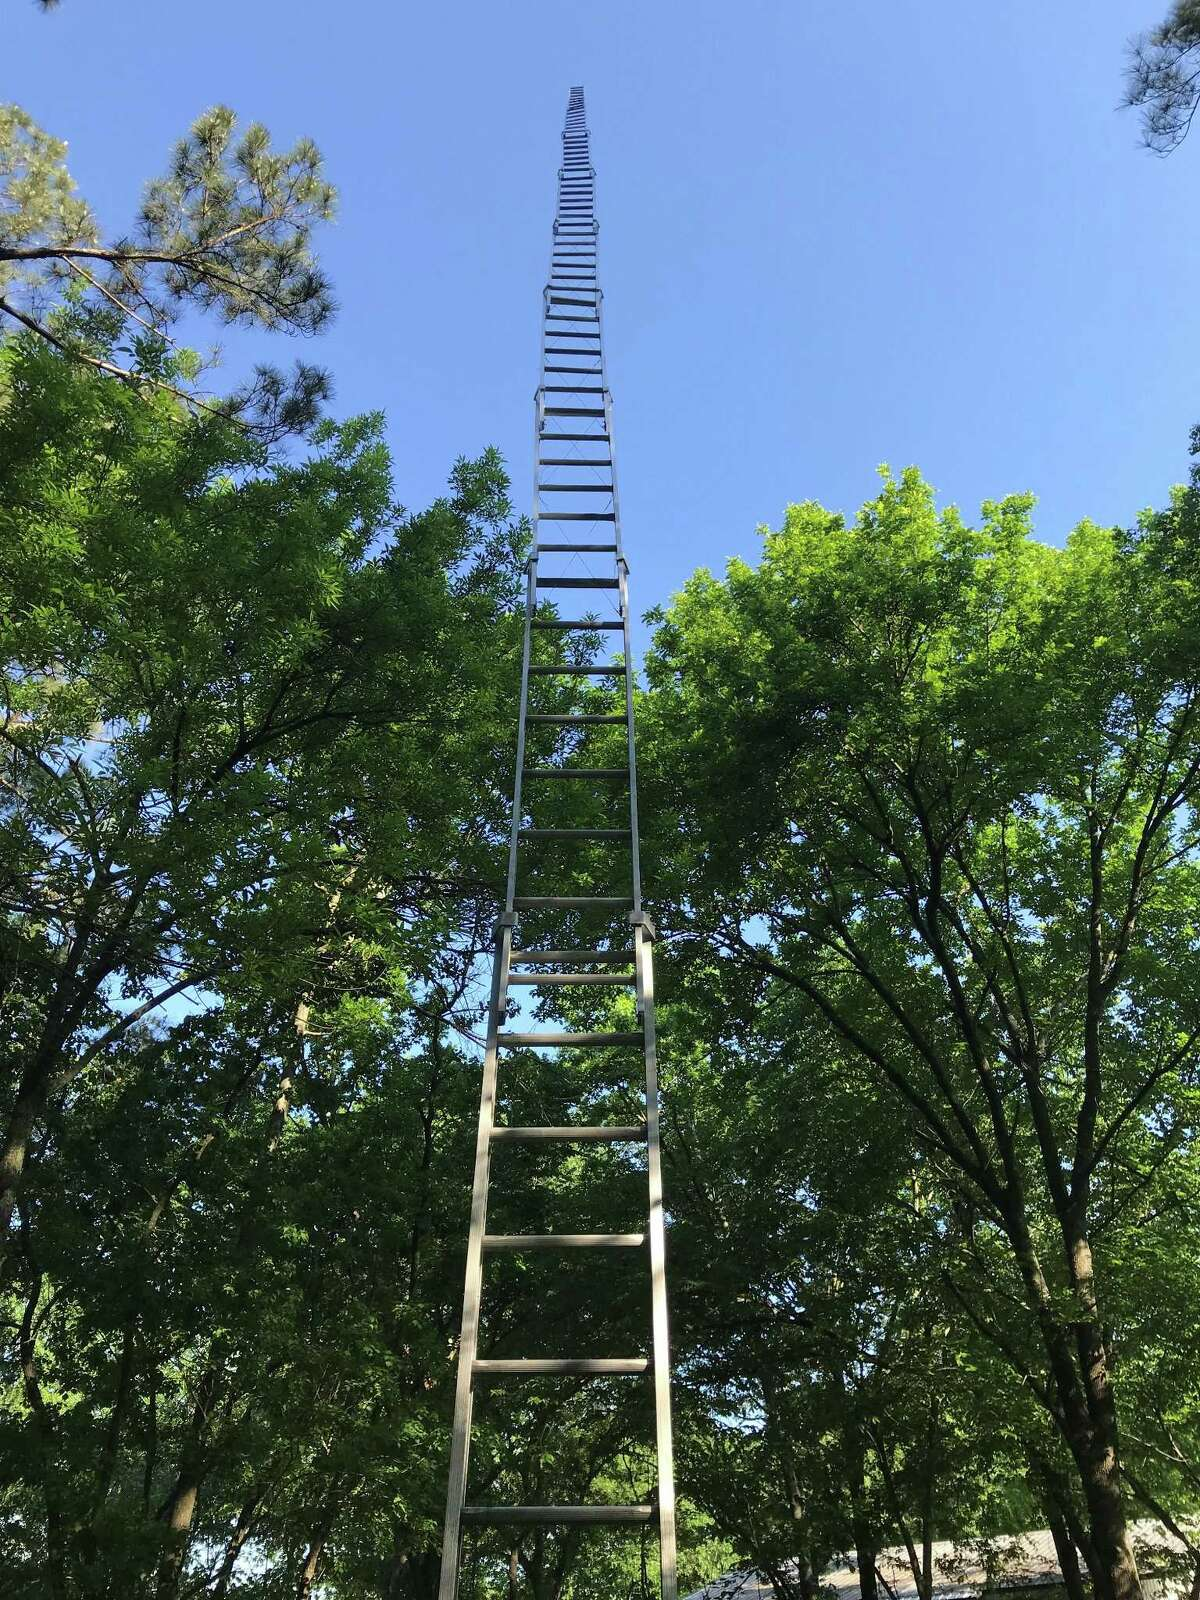 """Sculptor Paul Kittelson's 50-foot tall """"Existential Ladder"""" is hard to ignore in an open spot of the back yard in the Itchy Acres home and studio compound he shares with his long-time partner, Carter Ernst."""